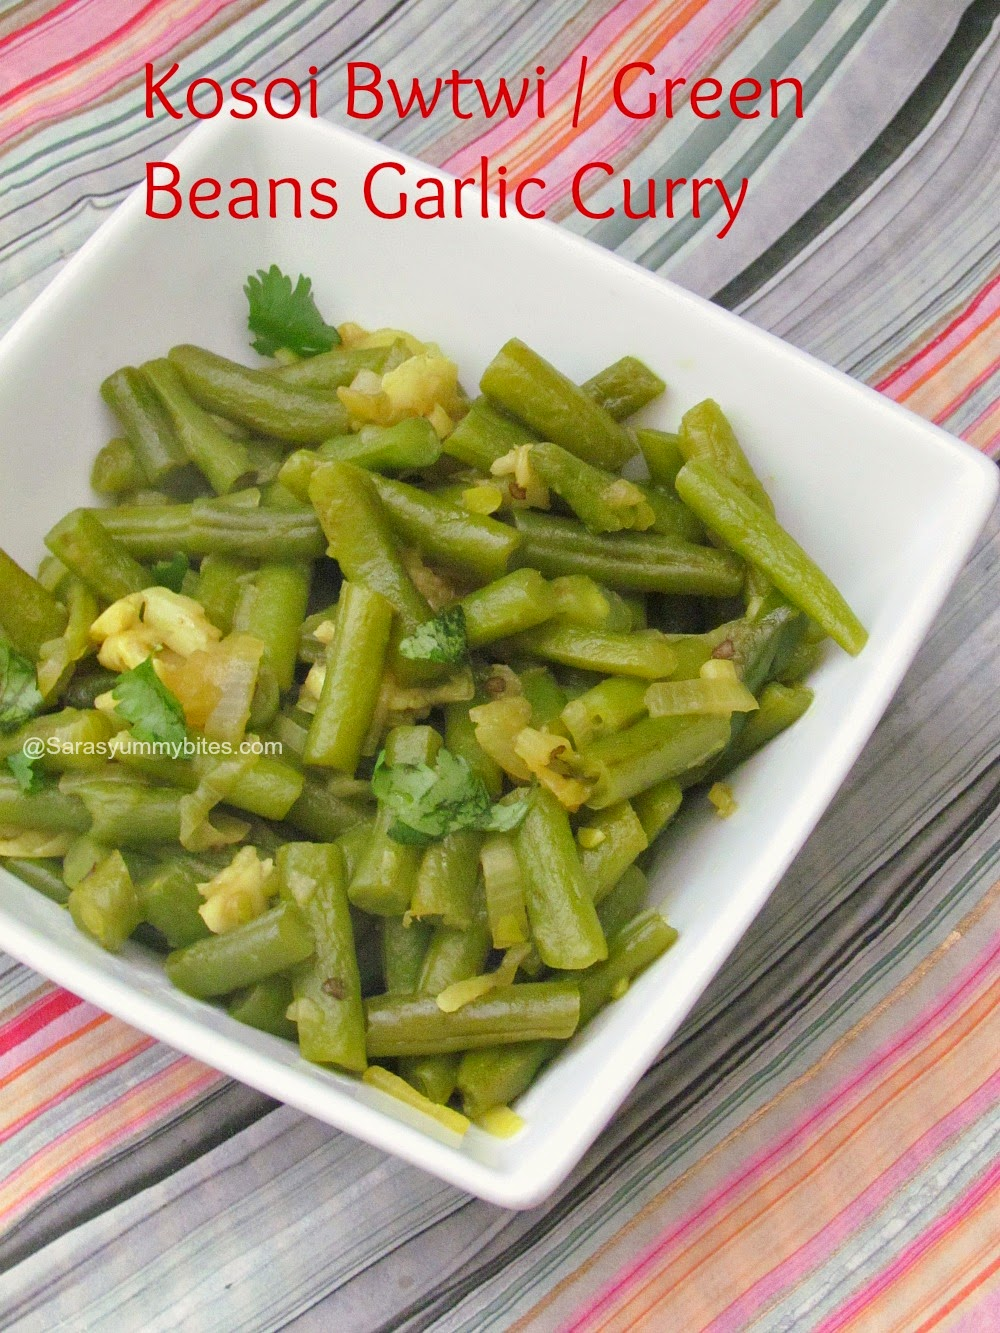 Kosoi Bwtwi / Green Beans Garlic Curry